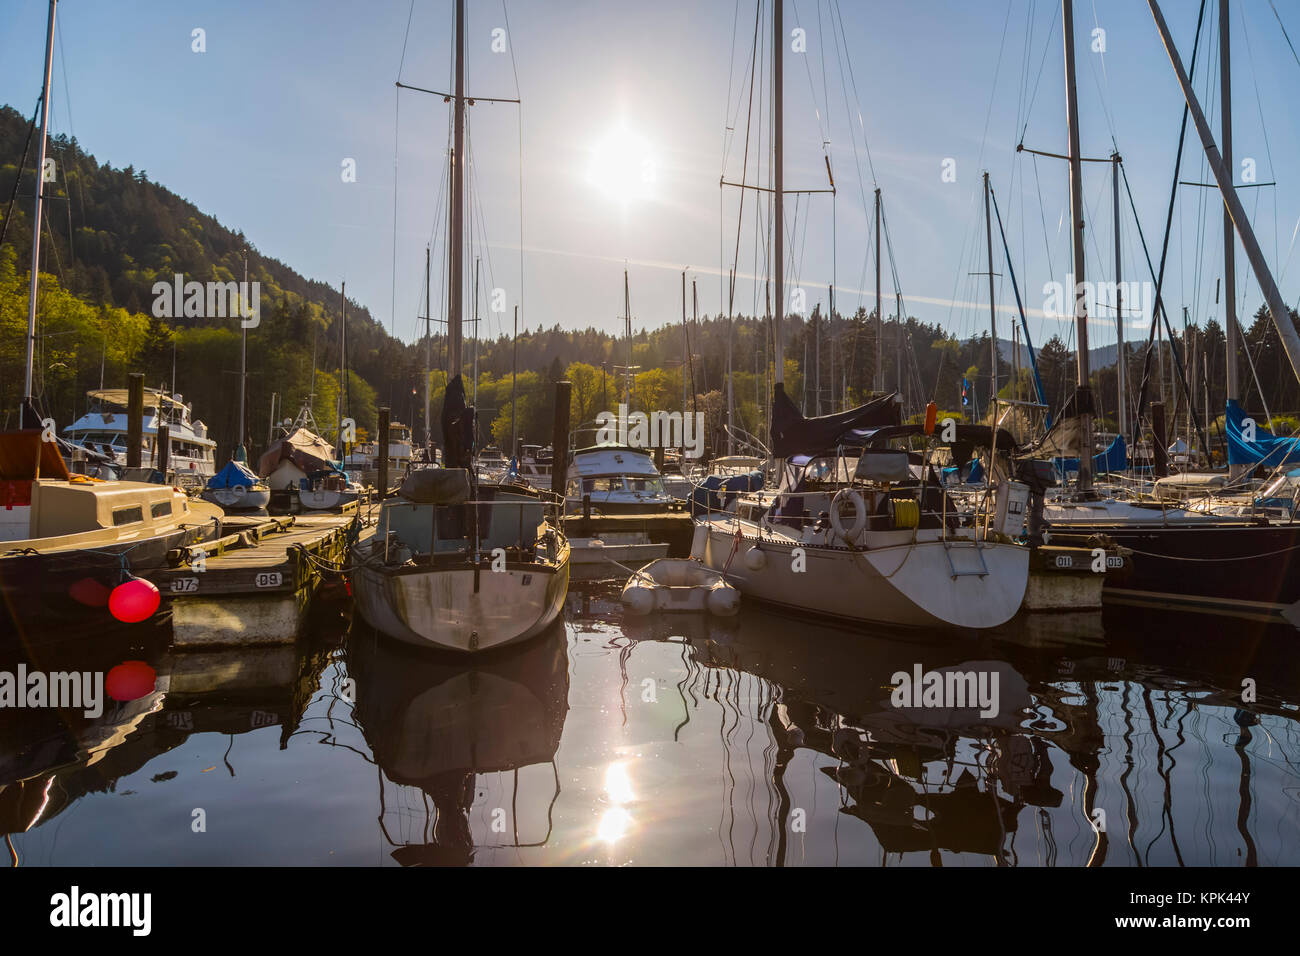 A tranquil sunny afternoon  as the sun sets behind the marina at Snug Cove, Bowen Island on the West Coast near - Stock Image